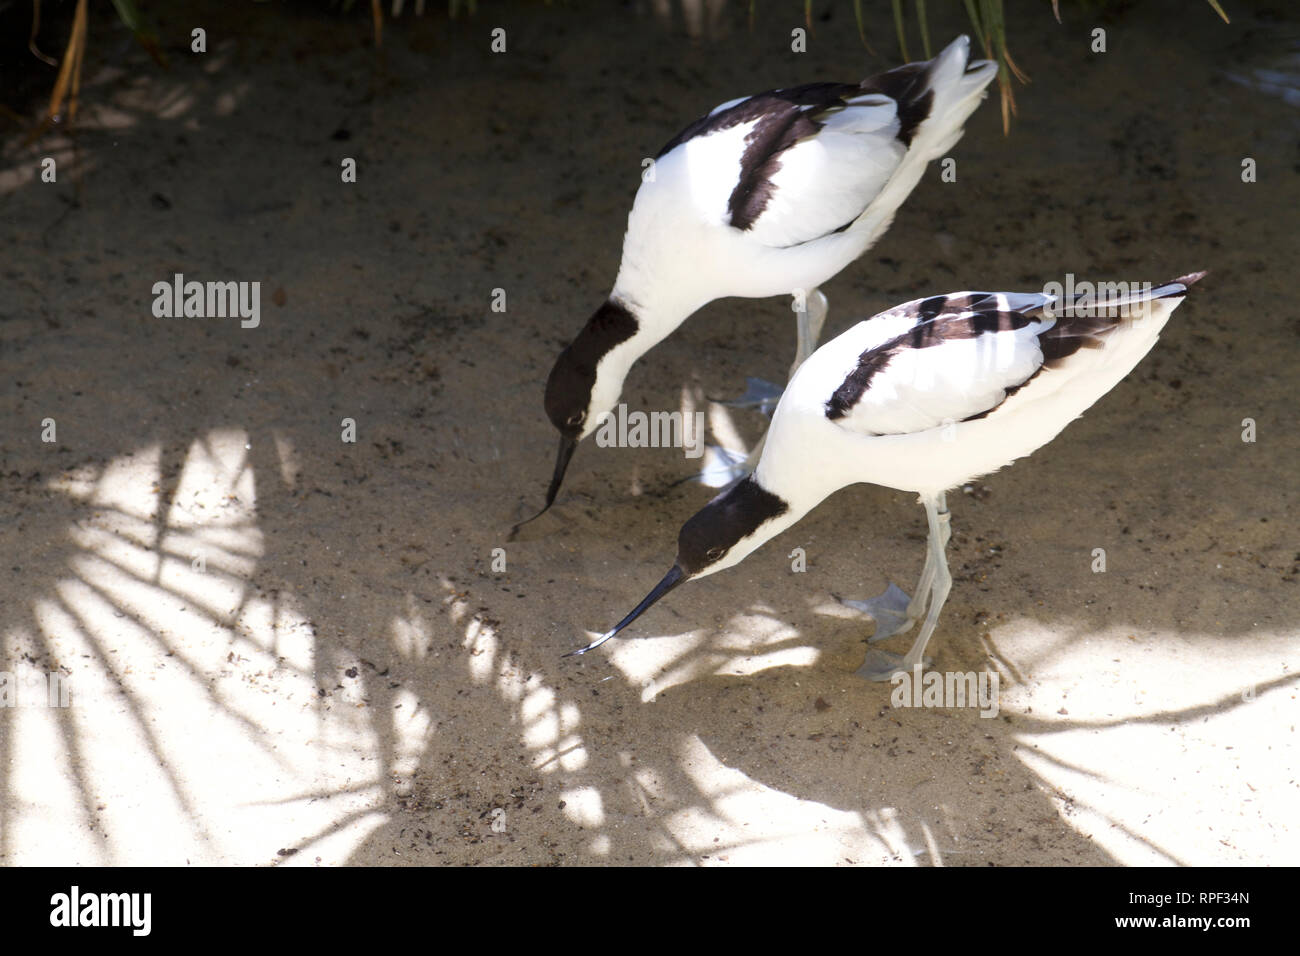 Roma-Pied avocet at BioParco Borghese - Stock Image